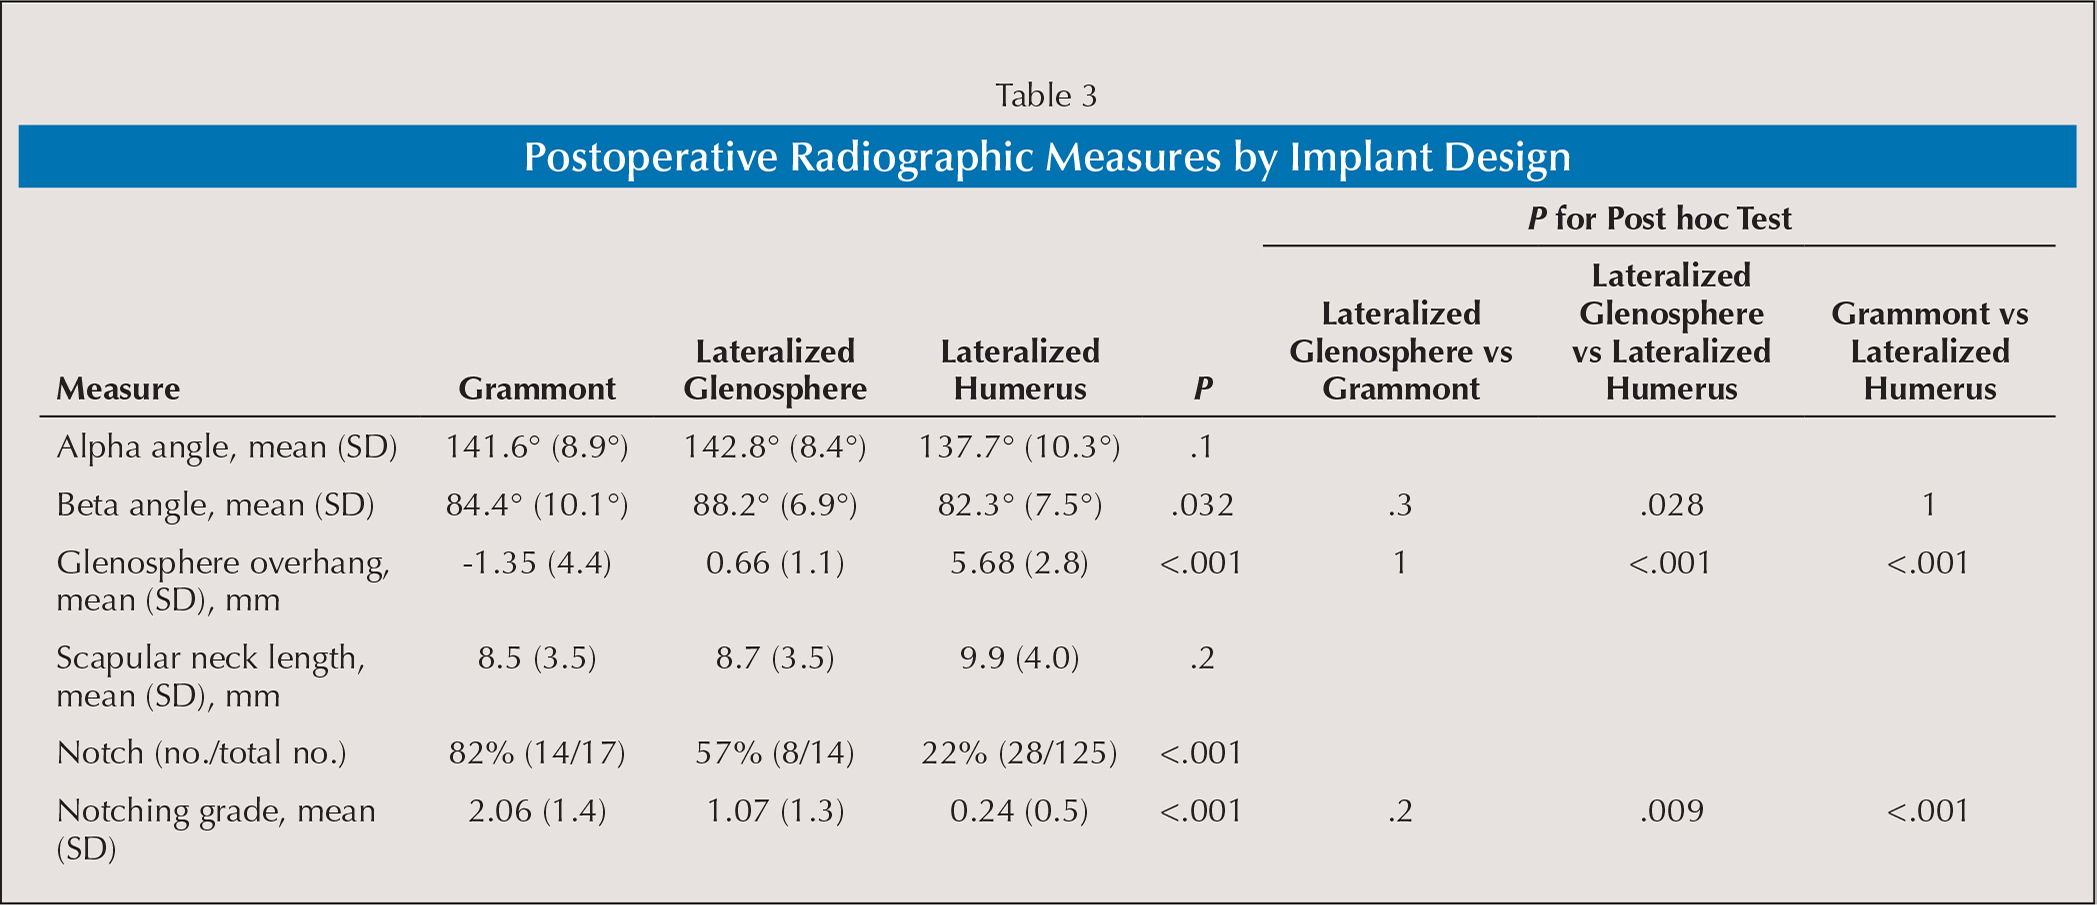 Postoperative Radiographic Measures by Implant Design